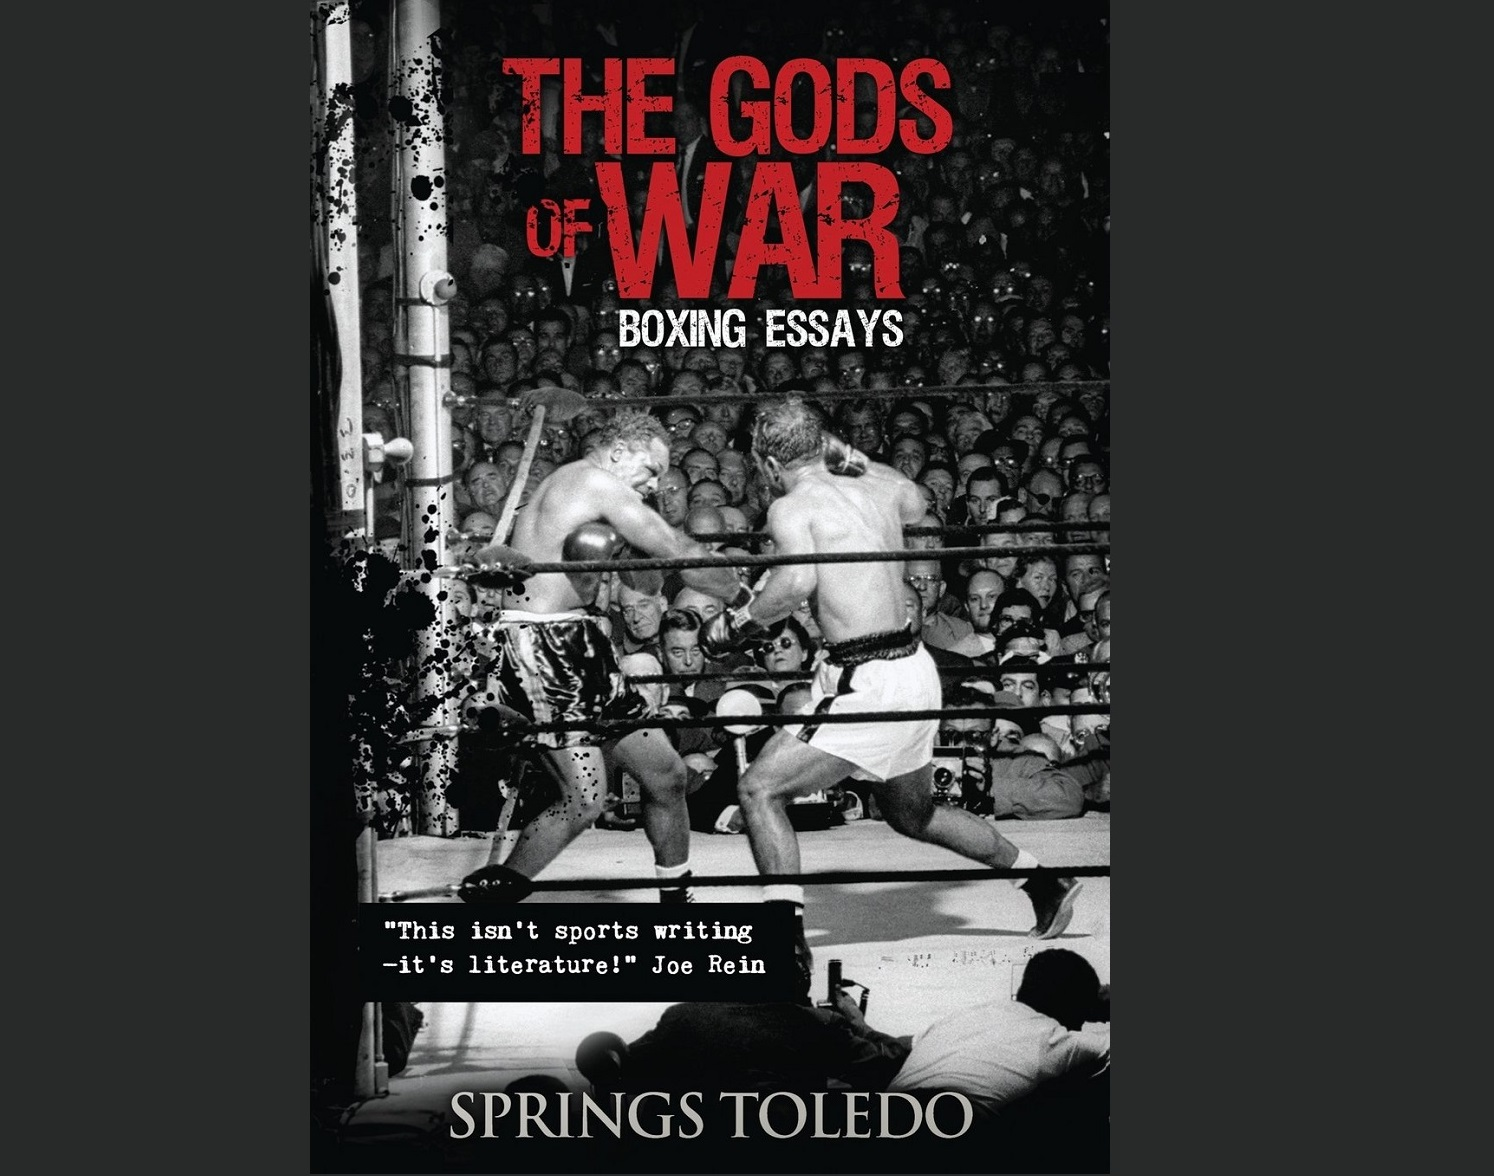 Book Review THE GODS OF WAR